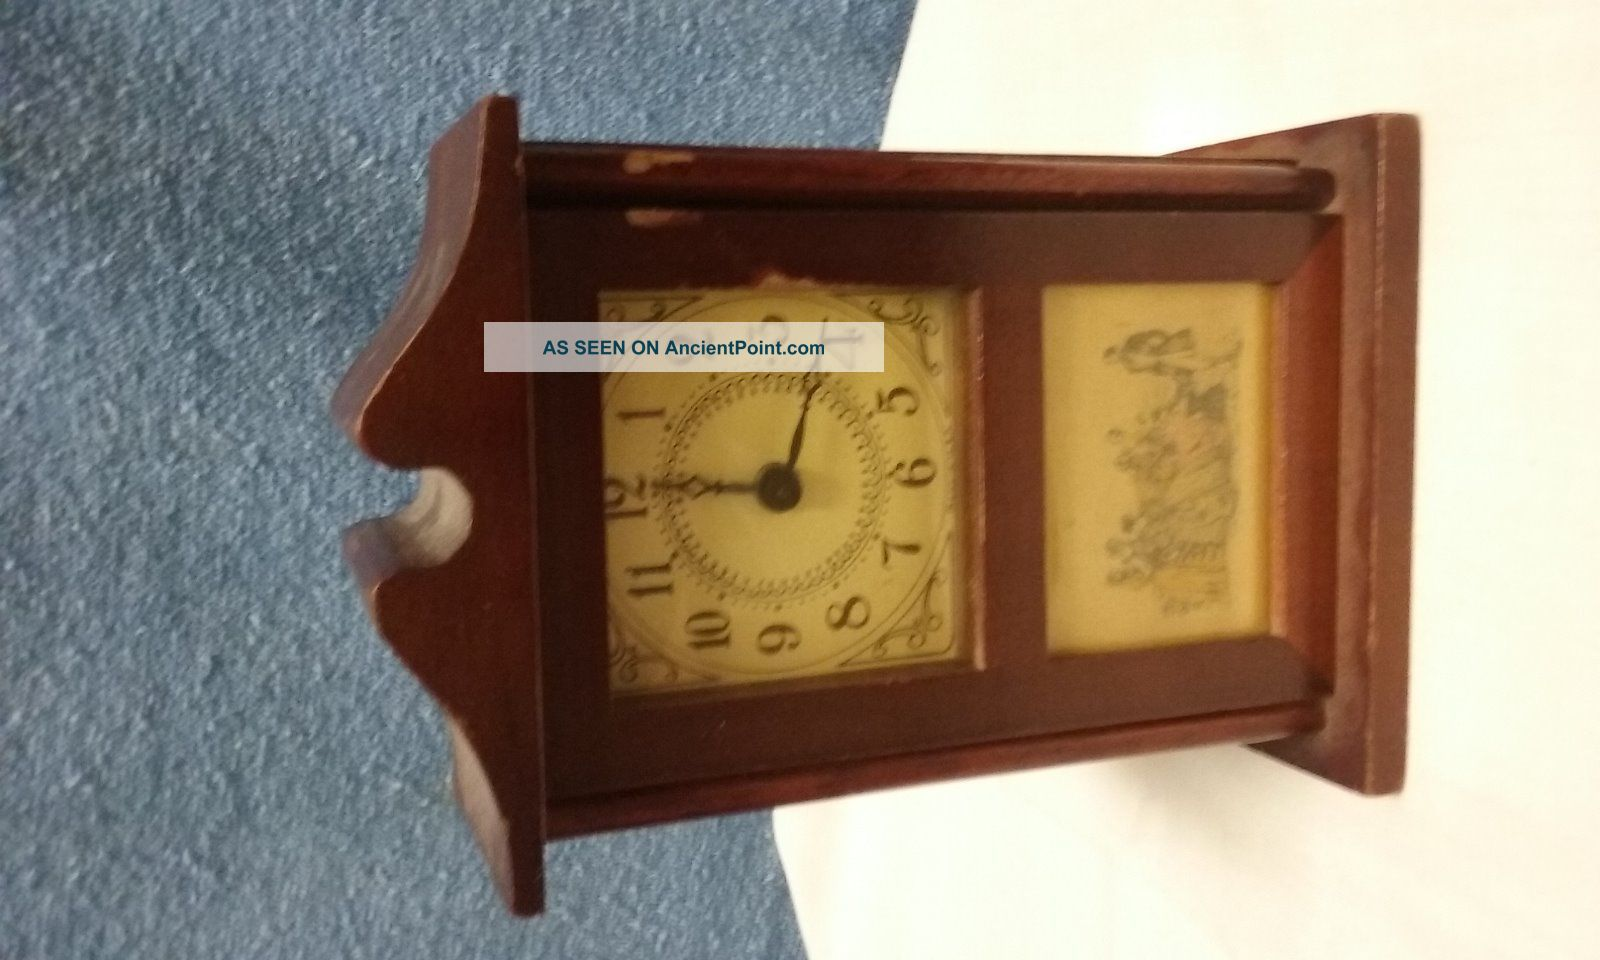 The Burroughs Company No.  48 T - Georgian Mini Mantle Clock Other Antique Home & Hearth photo